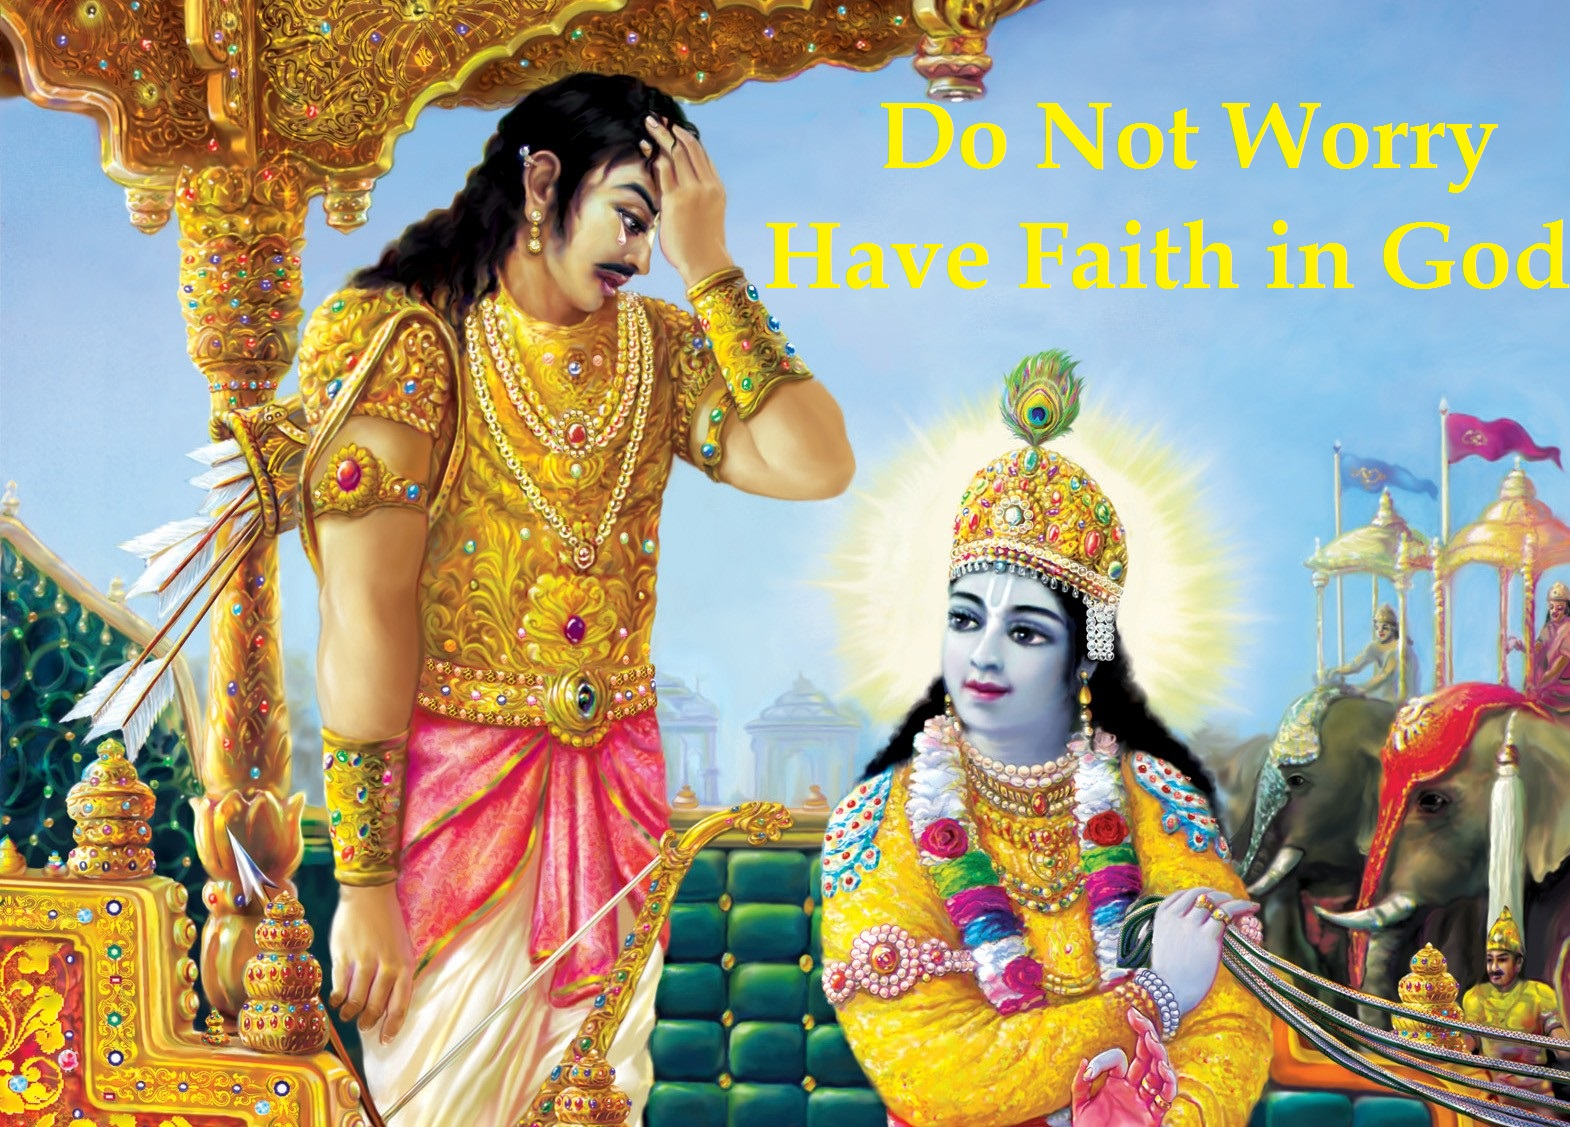 Lord Krishna Quotes Bhagwat Gita Blog  Do Not Worry Have Faith In Lord Krishna